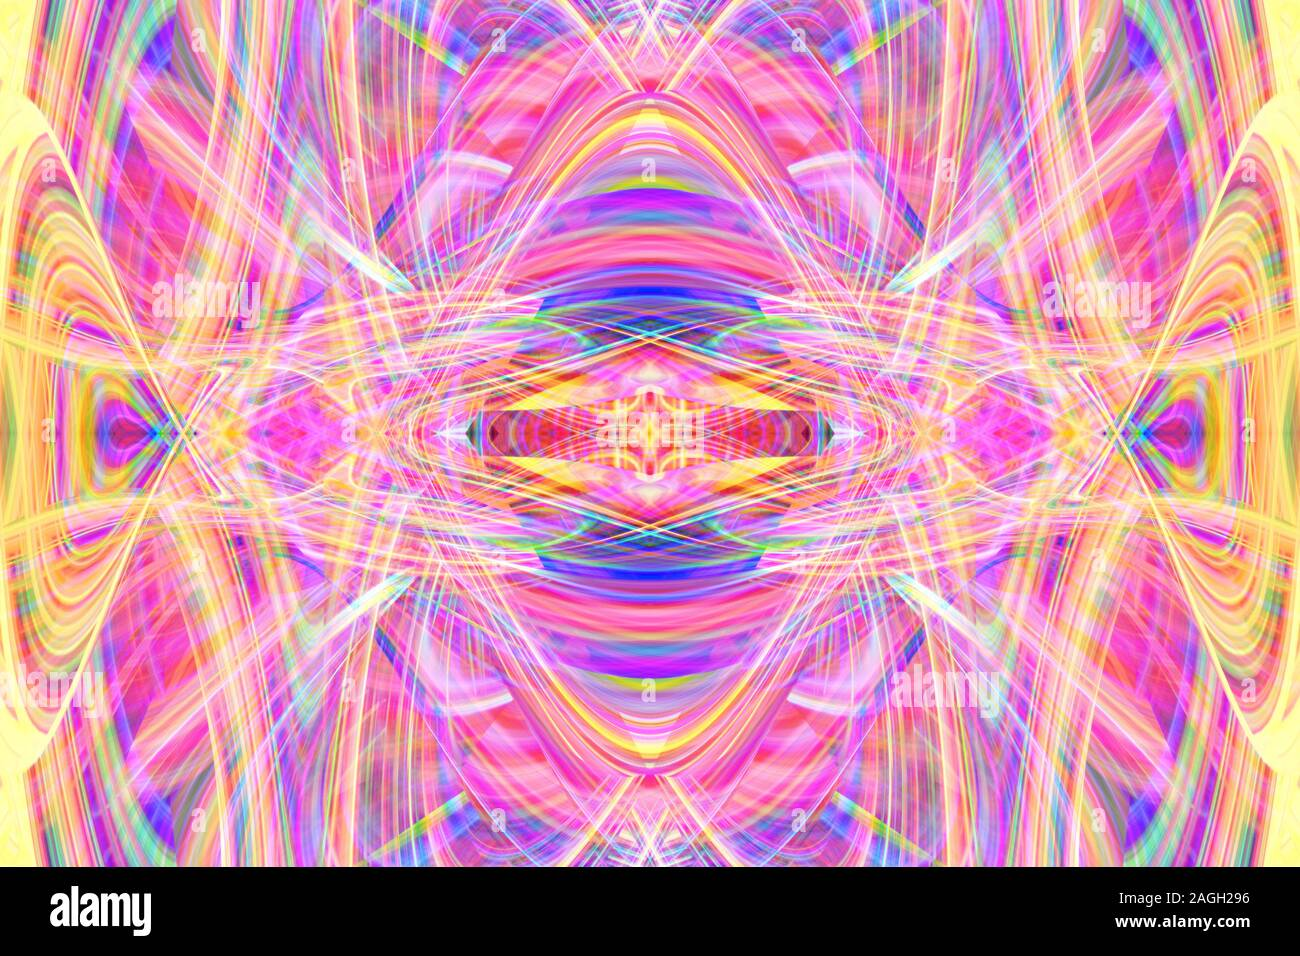 An abstract psychedelic background image. Stock Photo